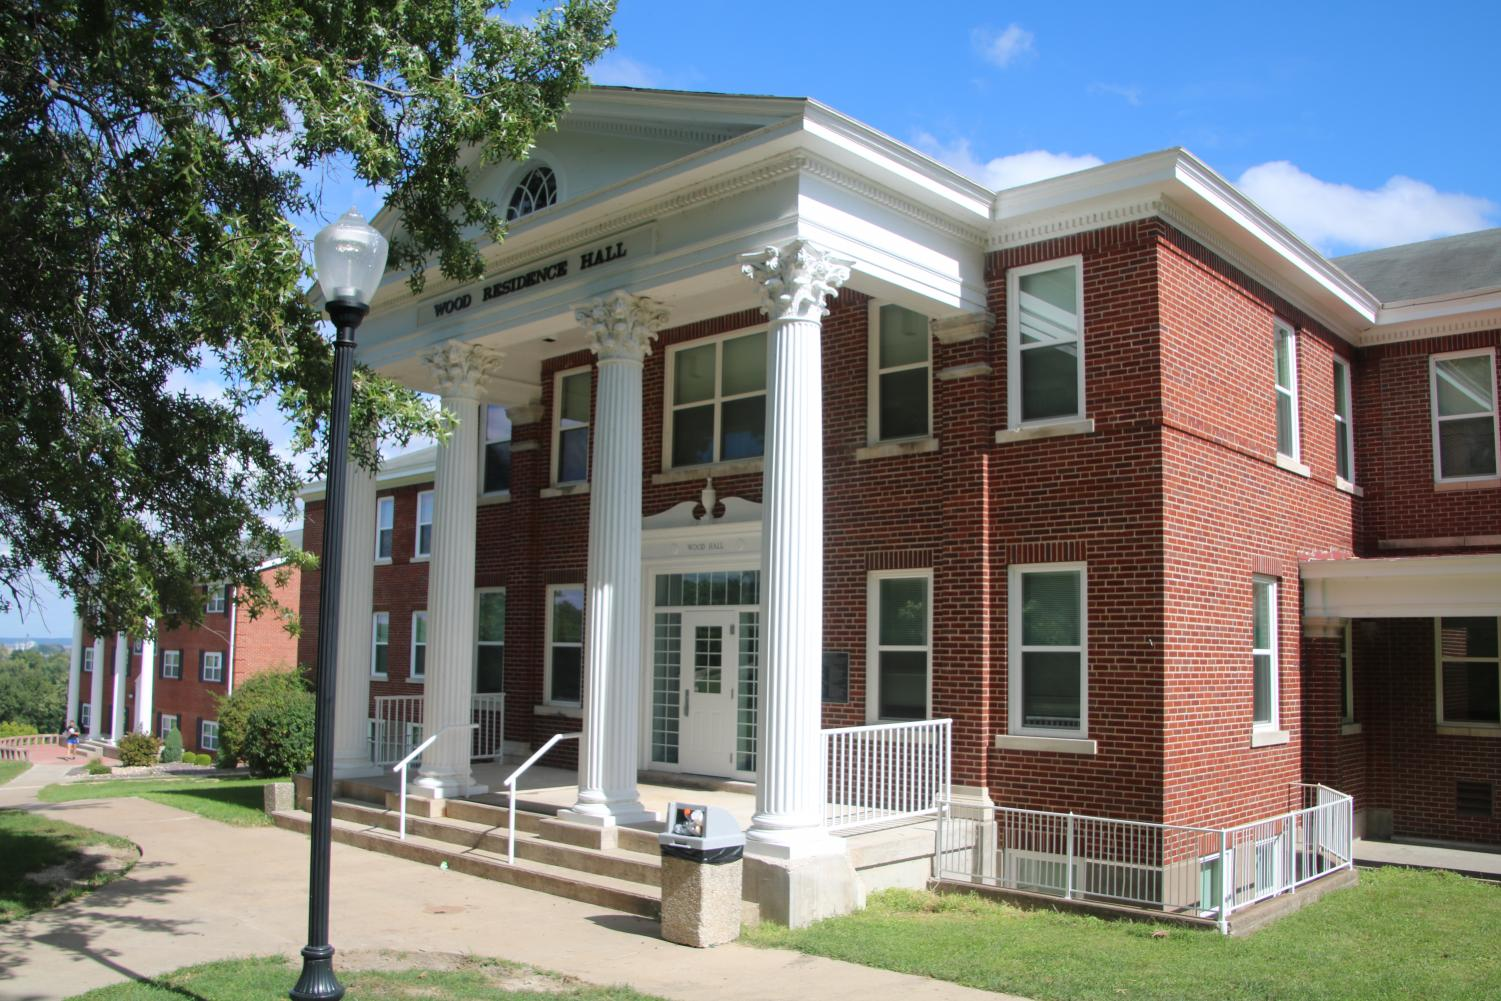 The front of Wood Residence Hall.